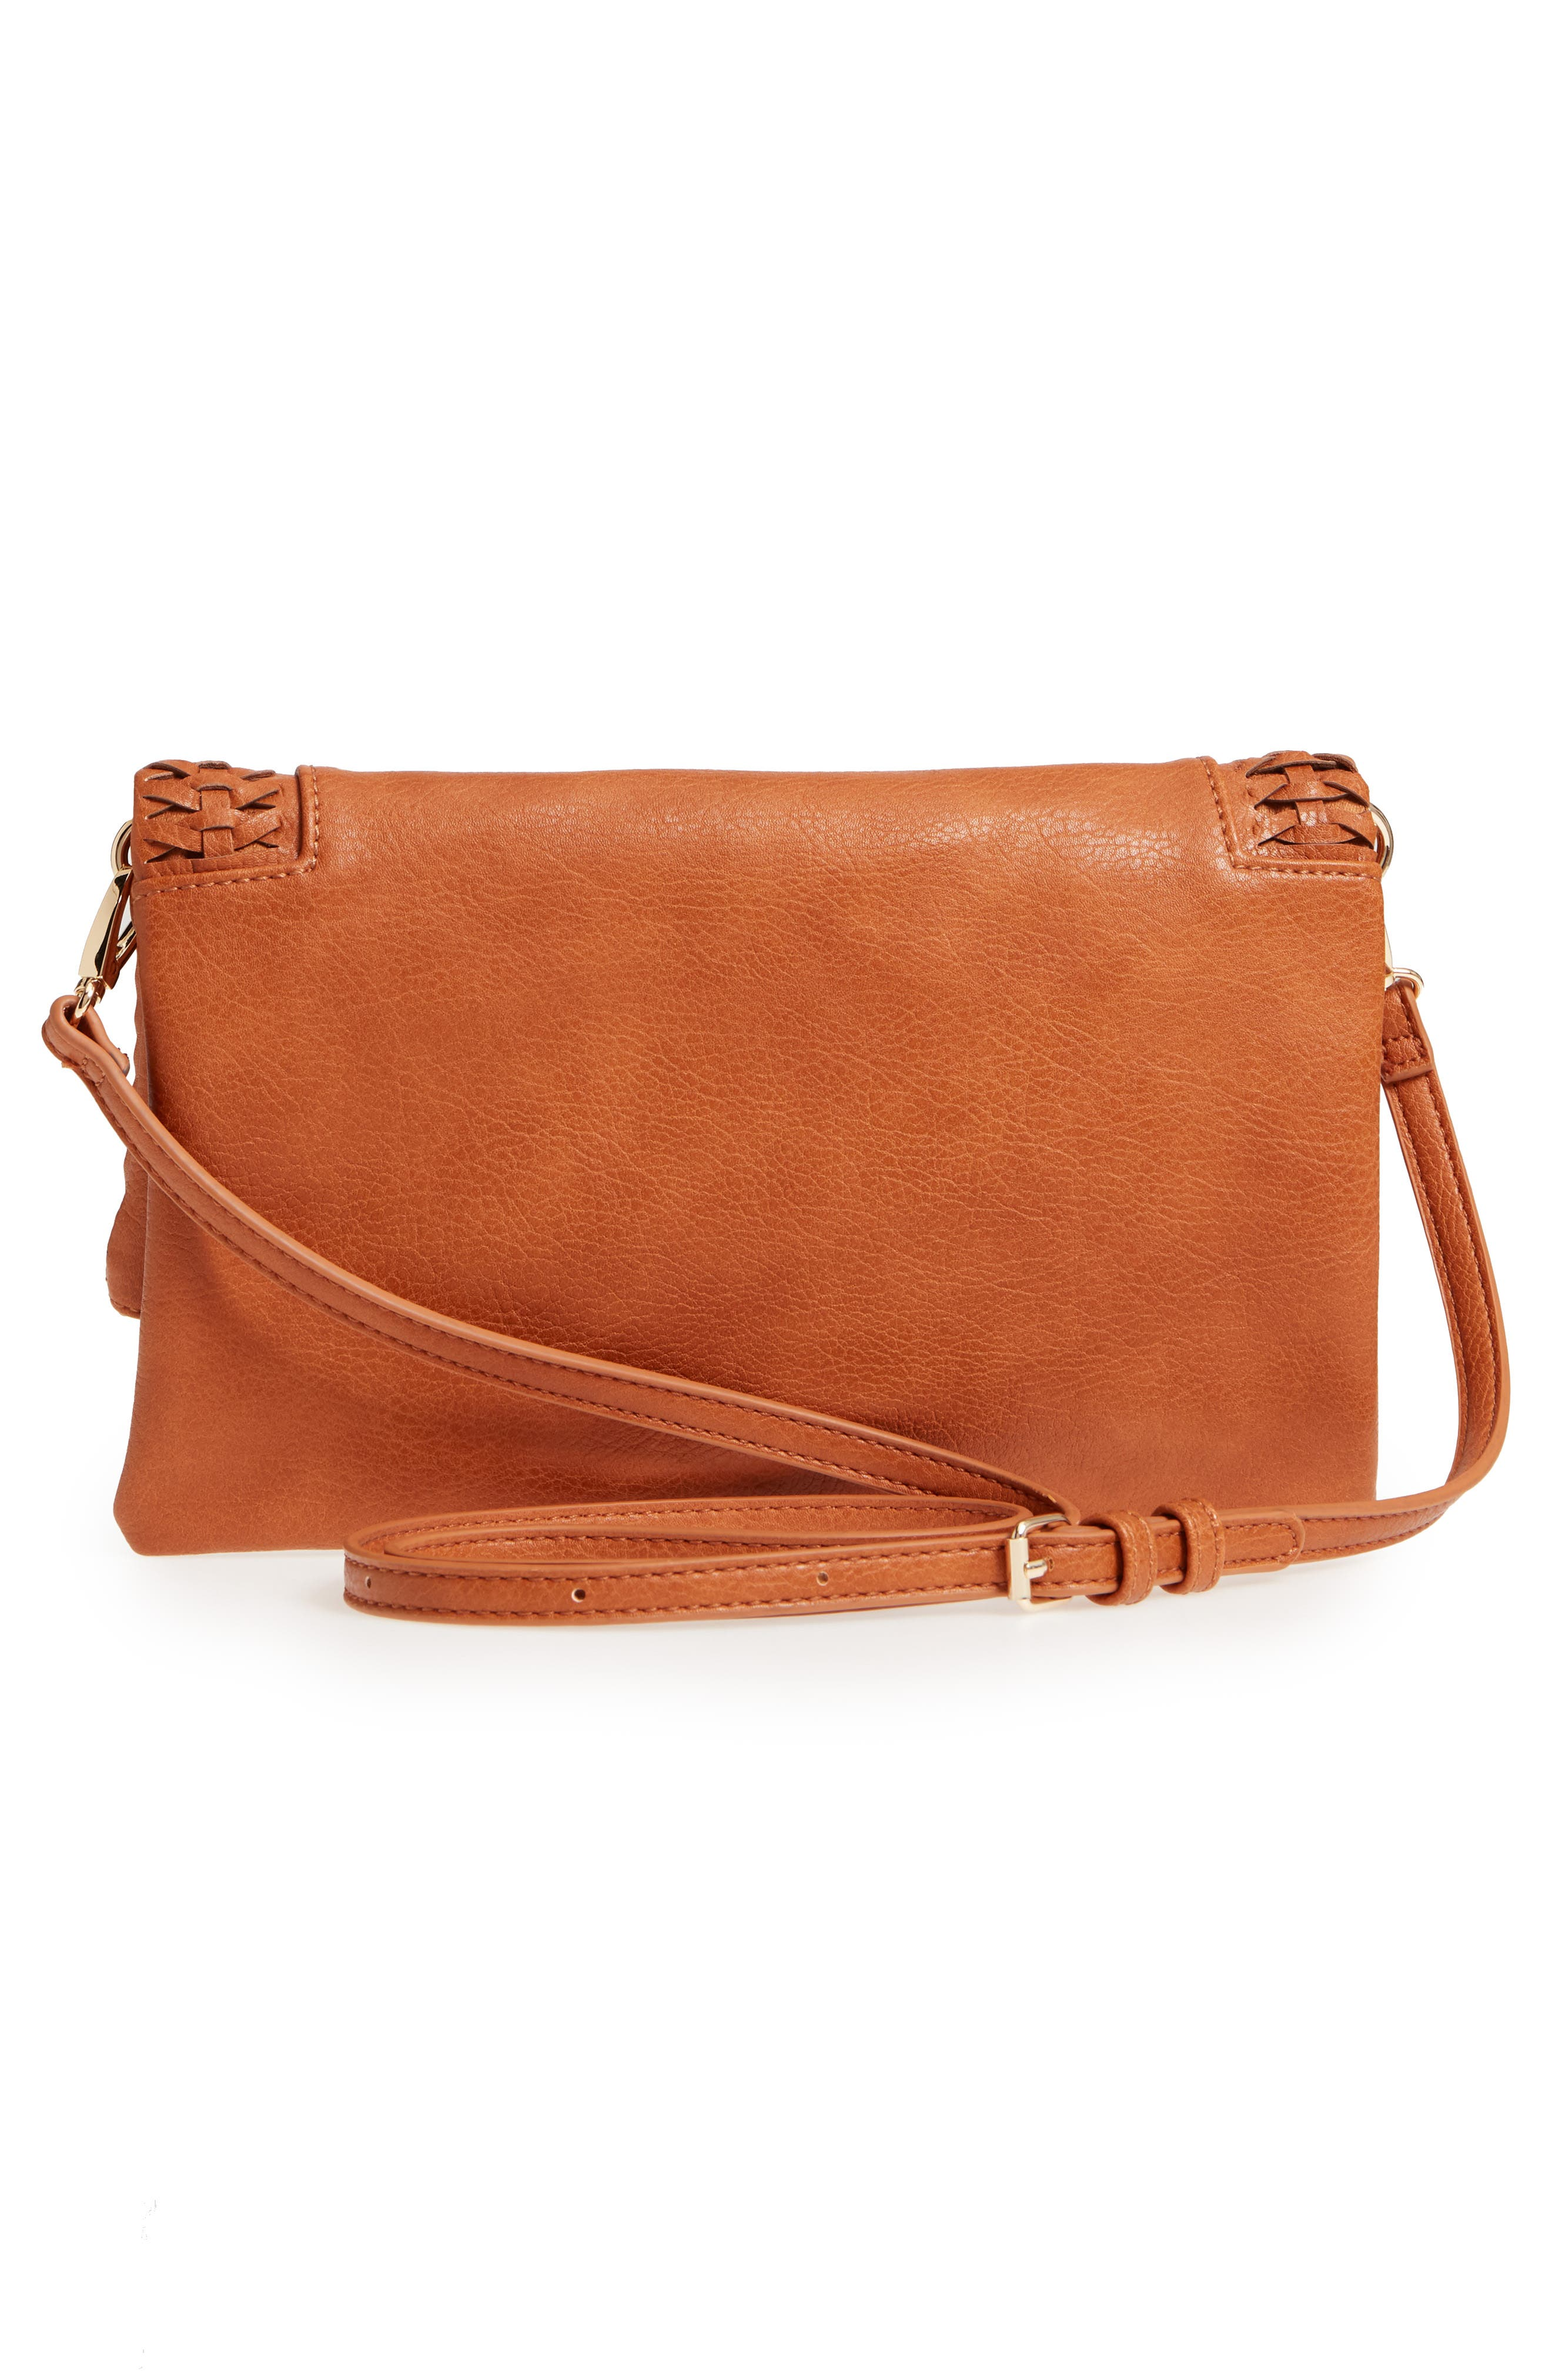 Tara Whipstitched Faux Leather Clutch,                             Alternate thumbnail 3, color,                             Cognac